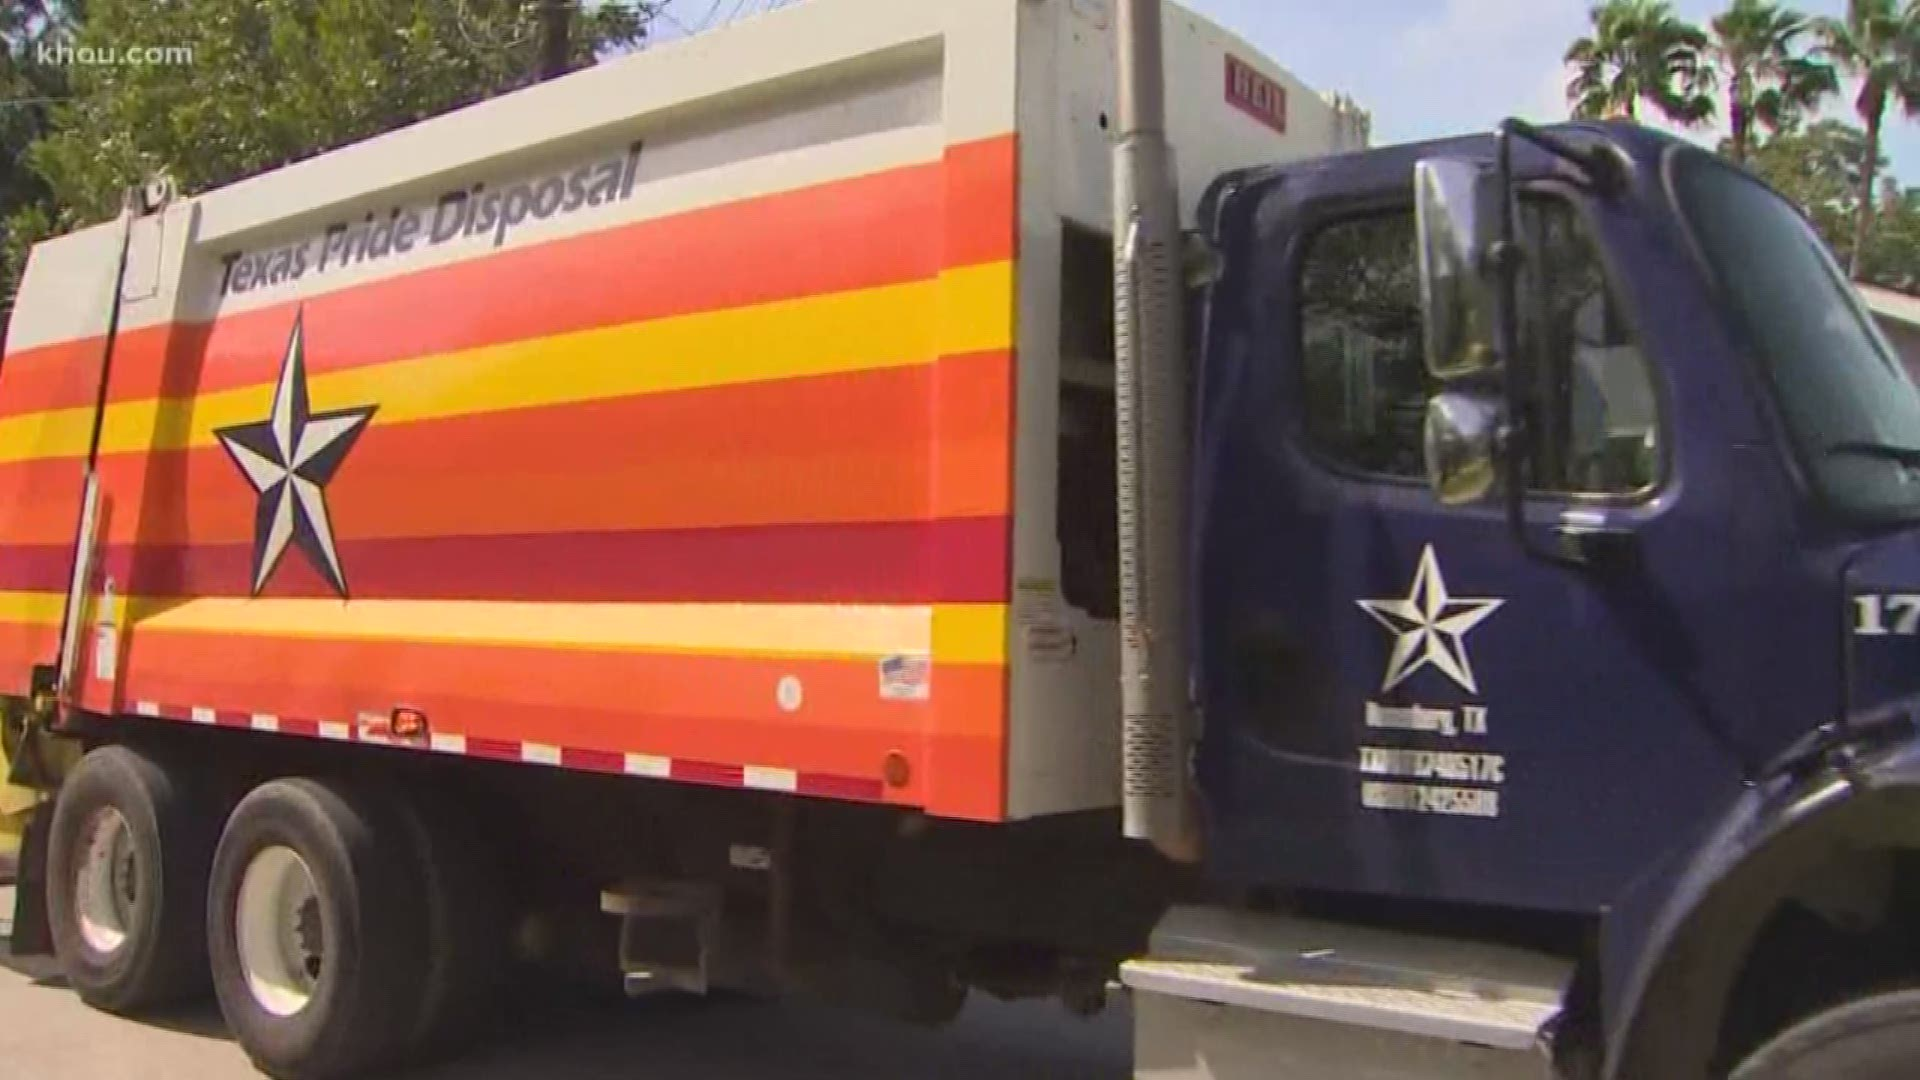 Astros Trash Truck Ready To Clean Up Houston Beat Yankees Khou Com